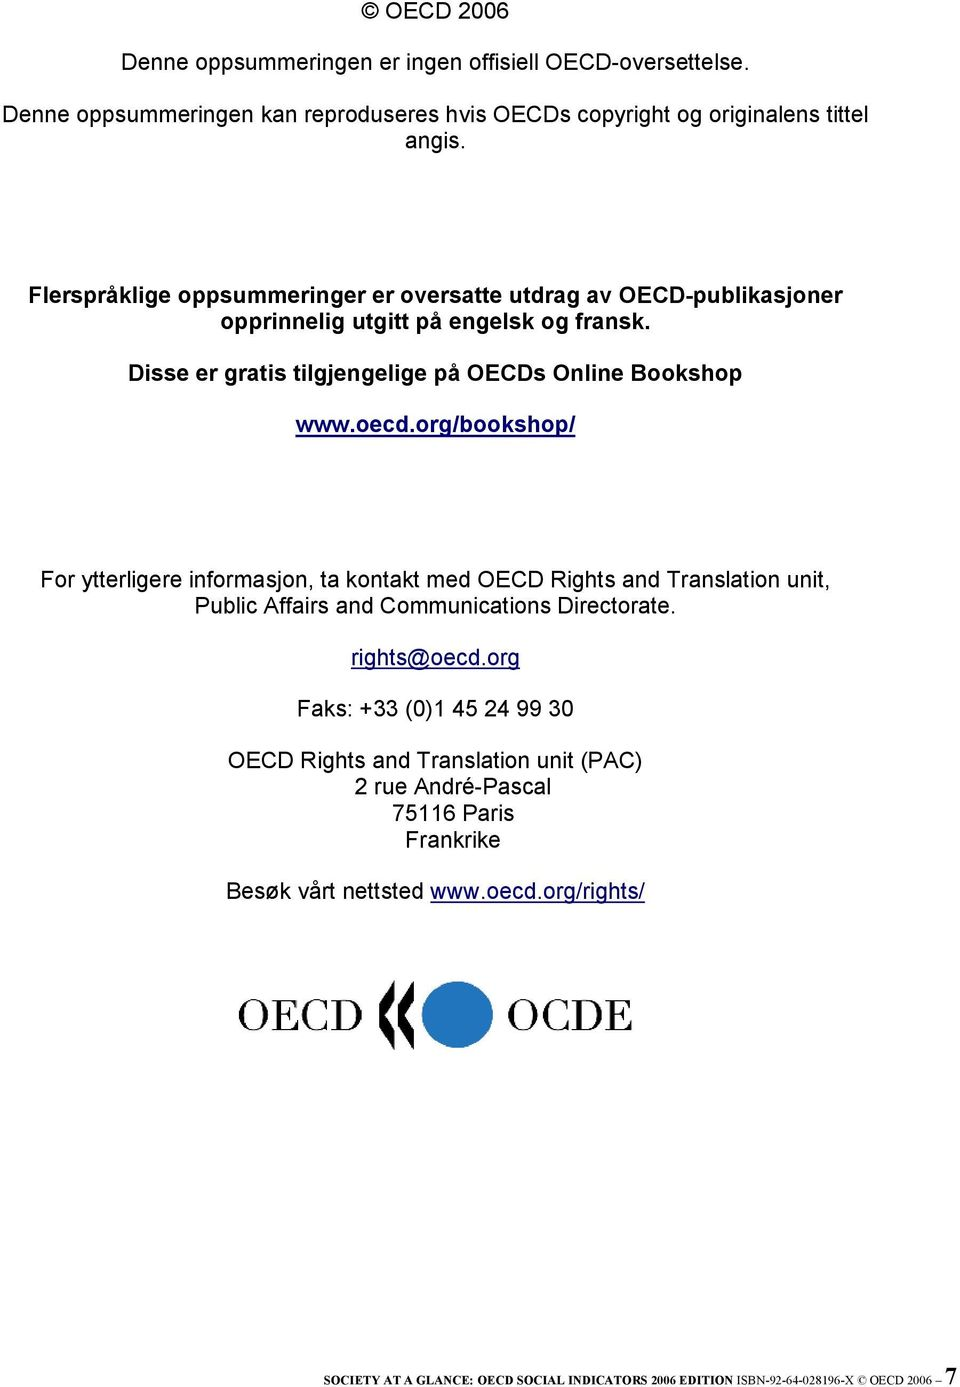 org/bookshop/ For ytterligere informasjon, ta kontakt med OECD Rights and Translation unit, Public Affairs and Communications Directorate. rights@oecd.